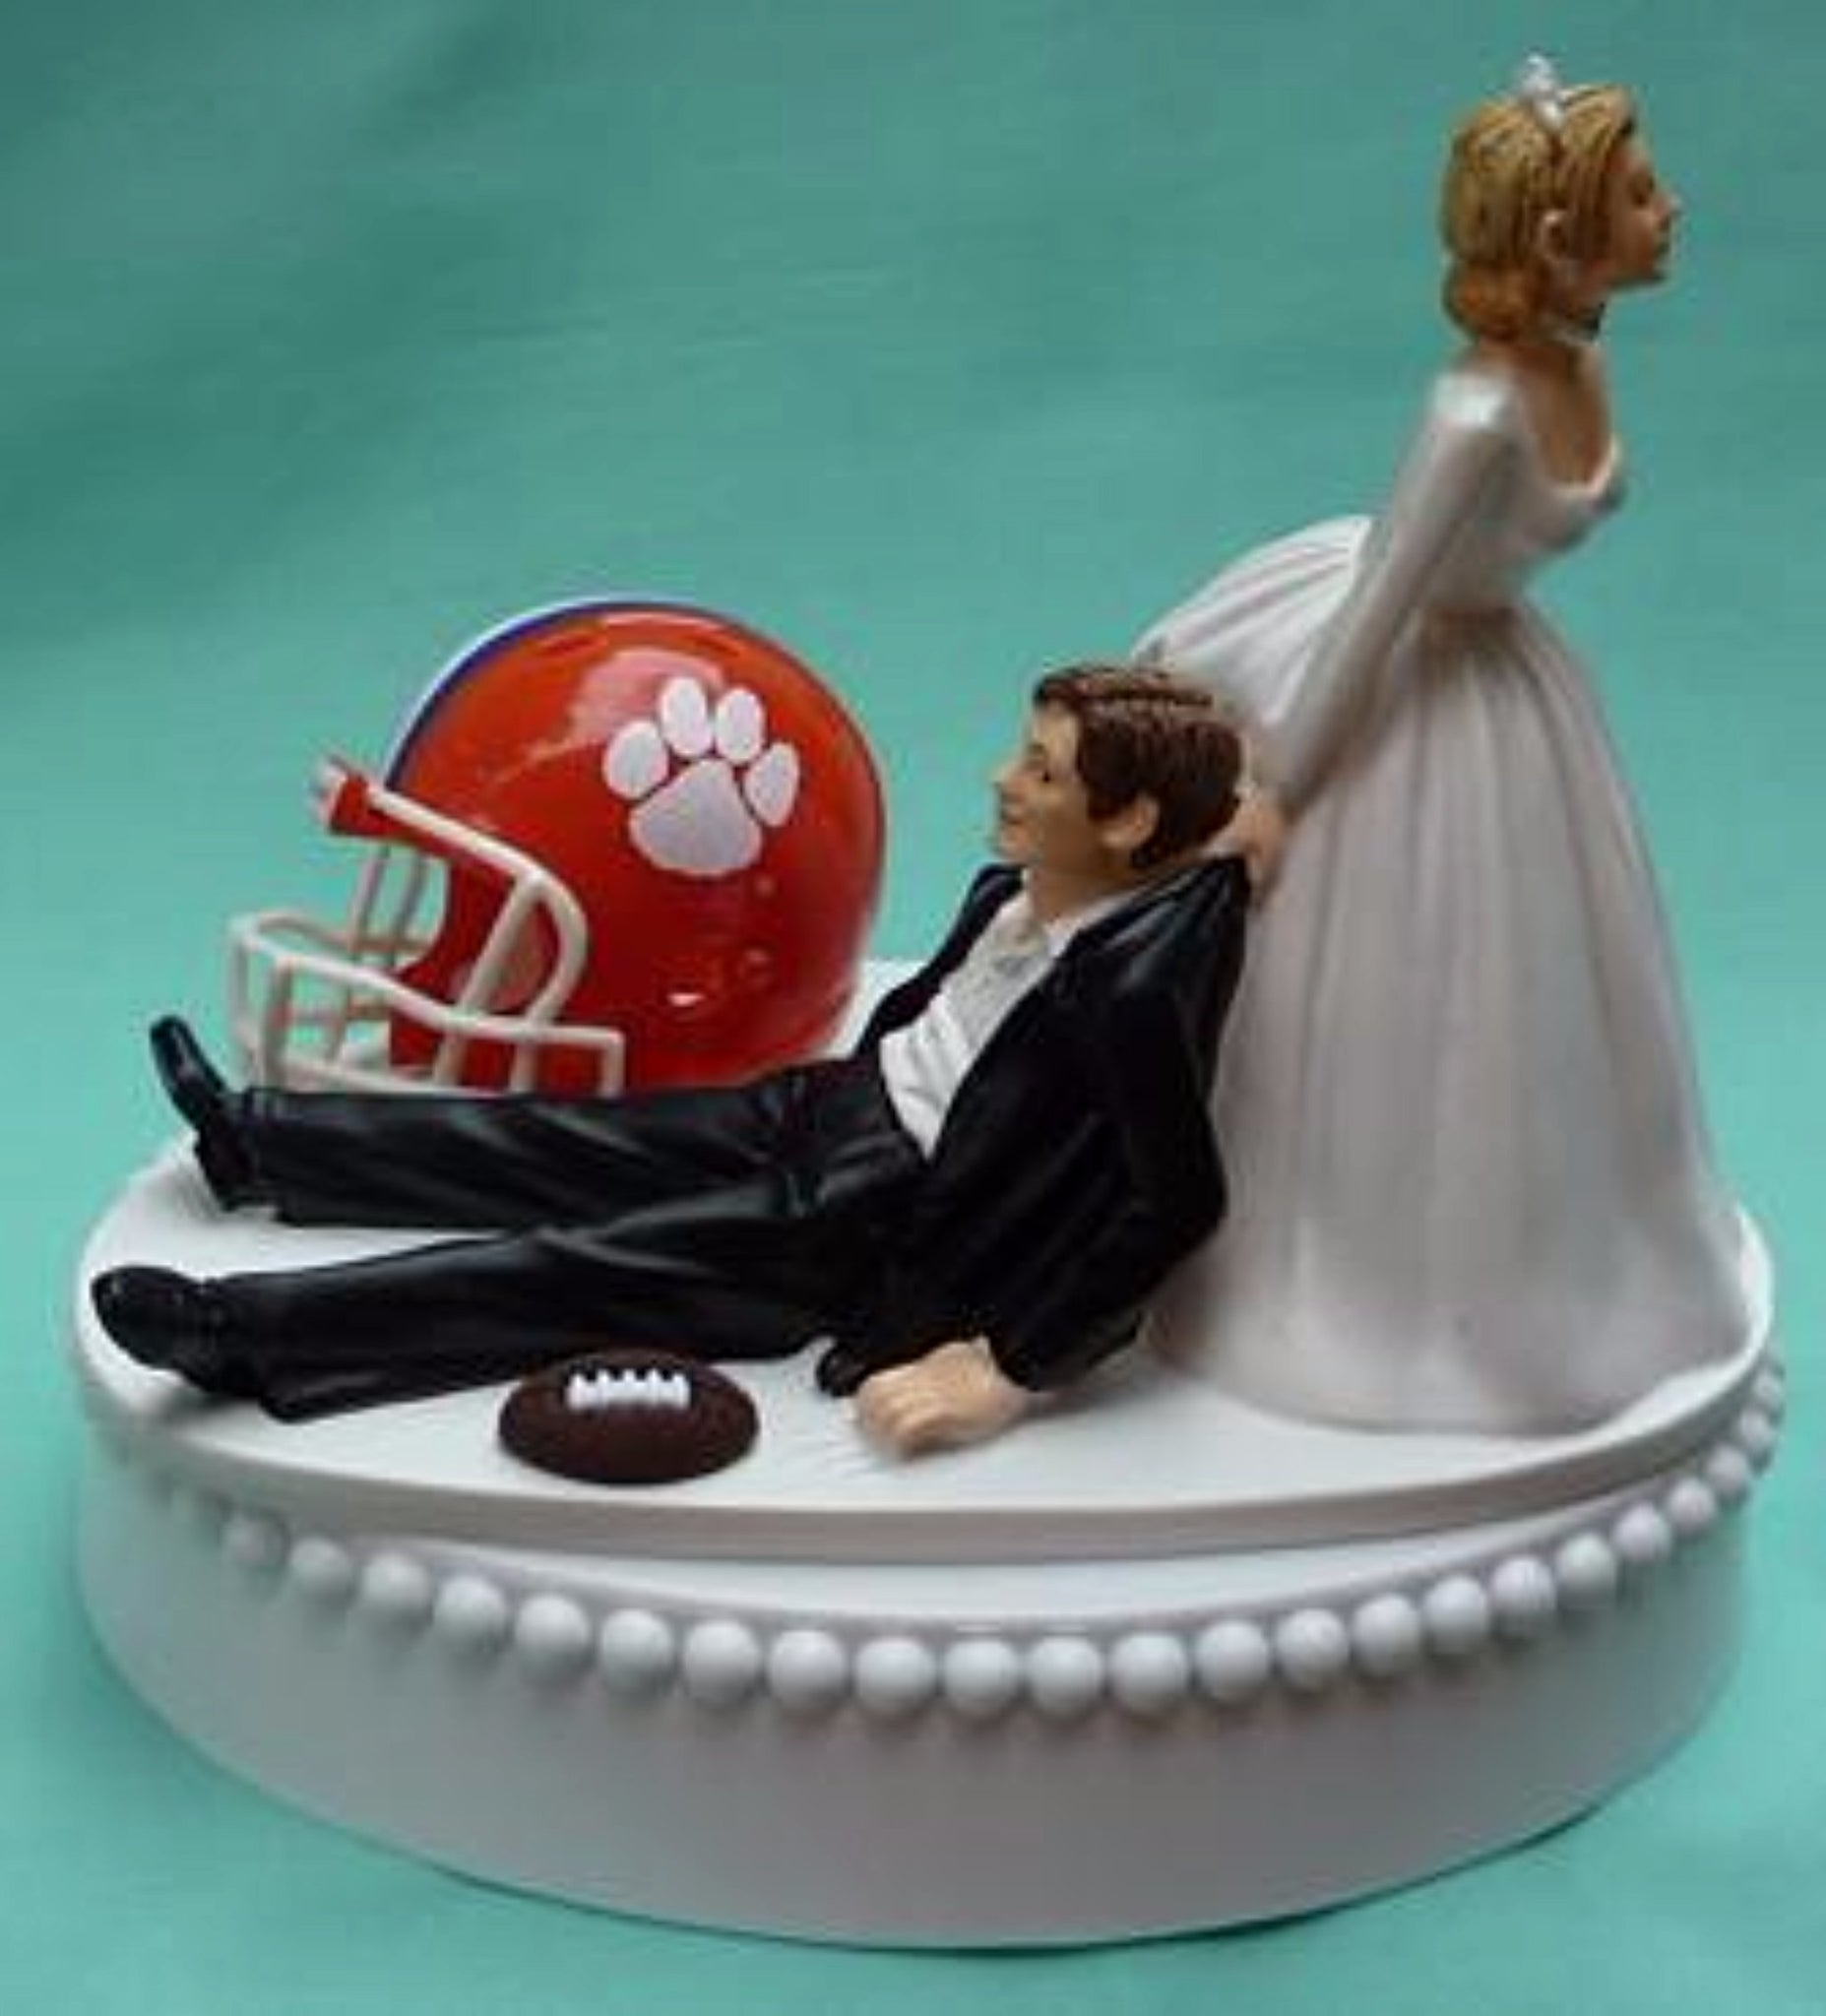 Clemson wedding cake topper Clemson University Tigers football themed sports fans fun bride dragging groom humorous reception gift FunWeddingThings.com